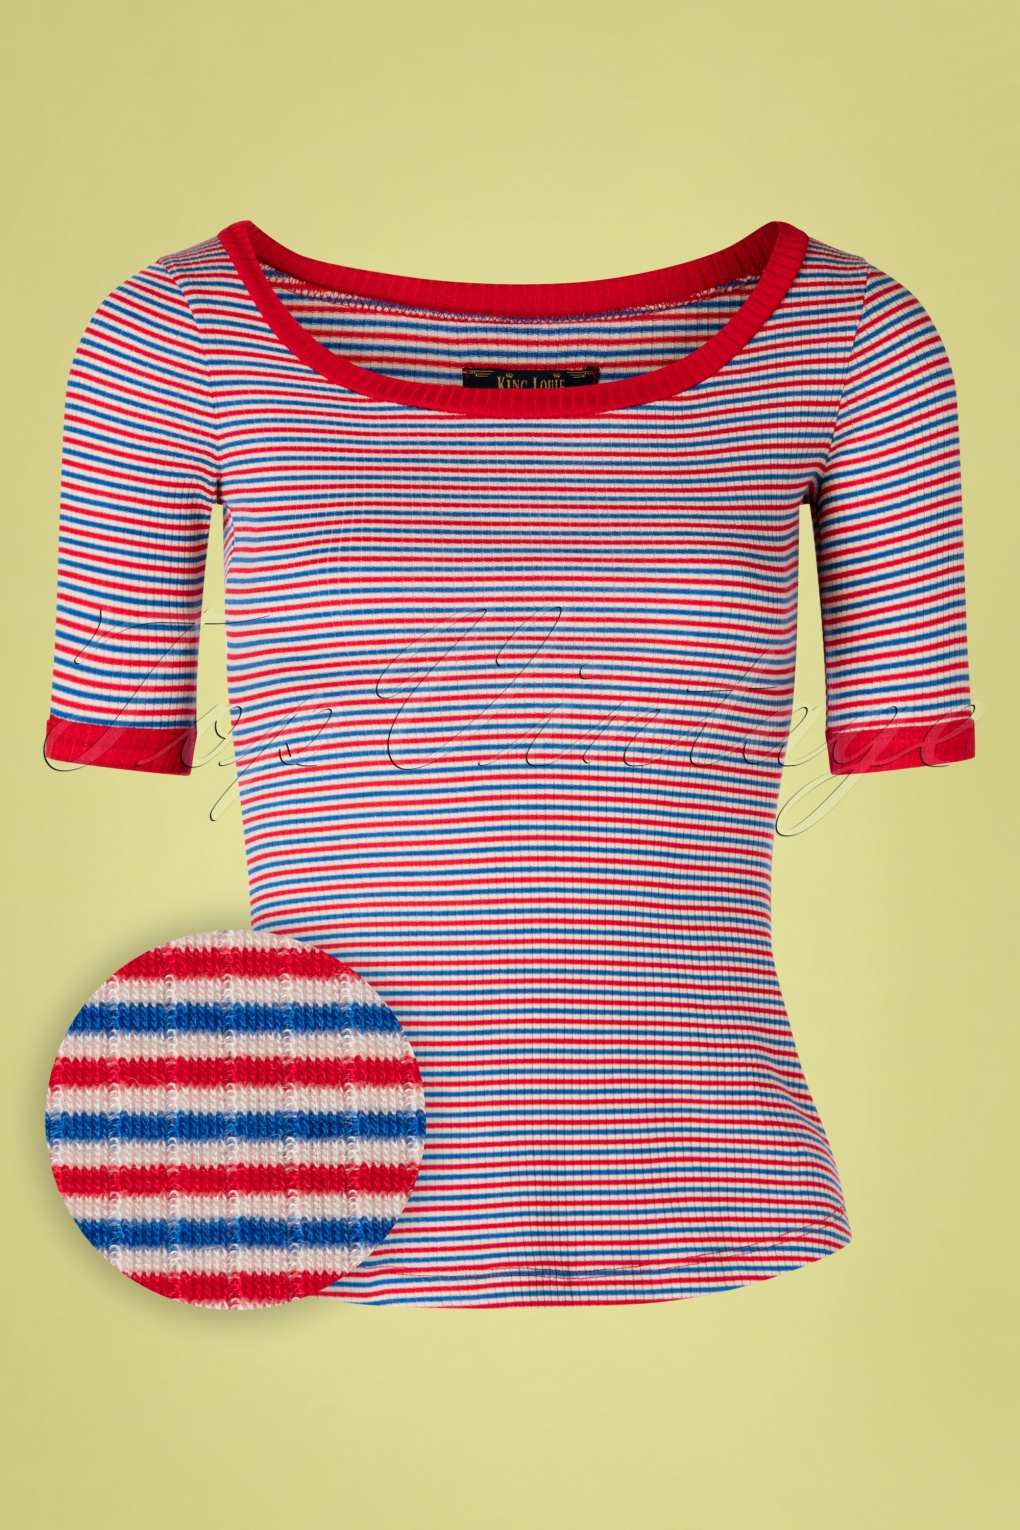 1960s Style Dresses, Clothing, Shoes UK 60s Carice Barber Stripes Top in Red £42.91 AT vintagedancer.com